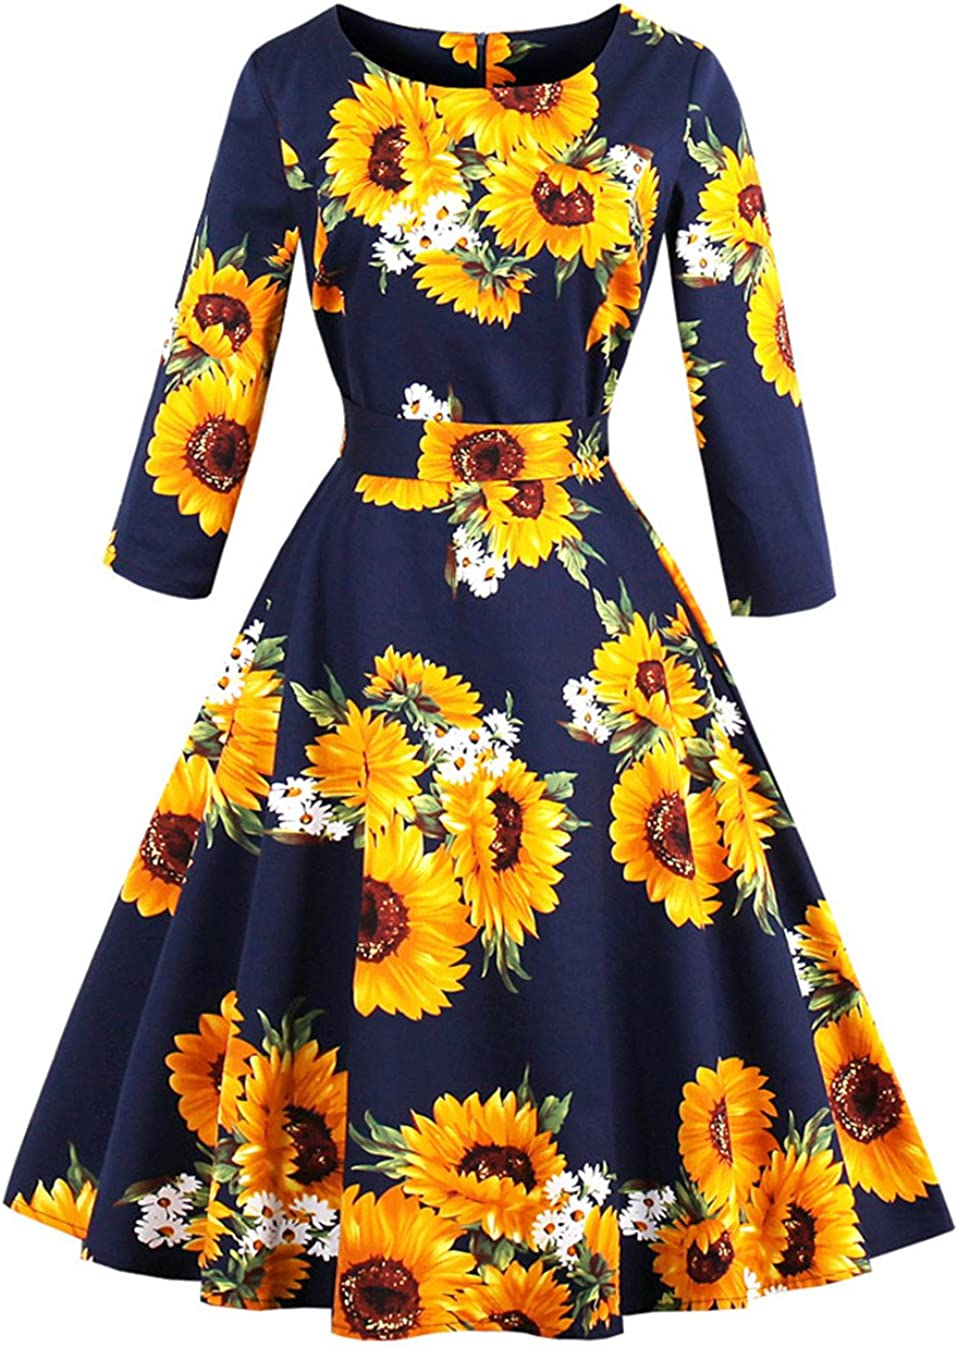 Wellwits Don't miss the campaign Women's 3 4 Sleeve Waist Vintage Sunflower Ranking TOP7 Sw Tie Print